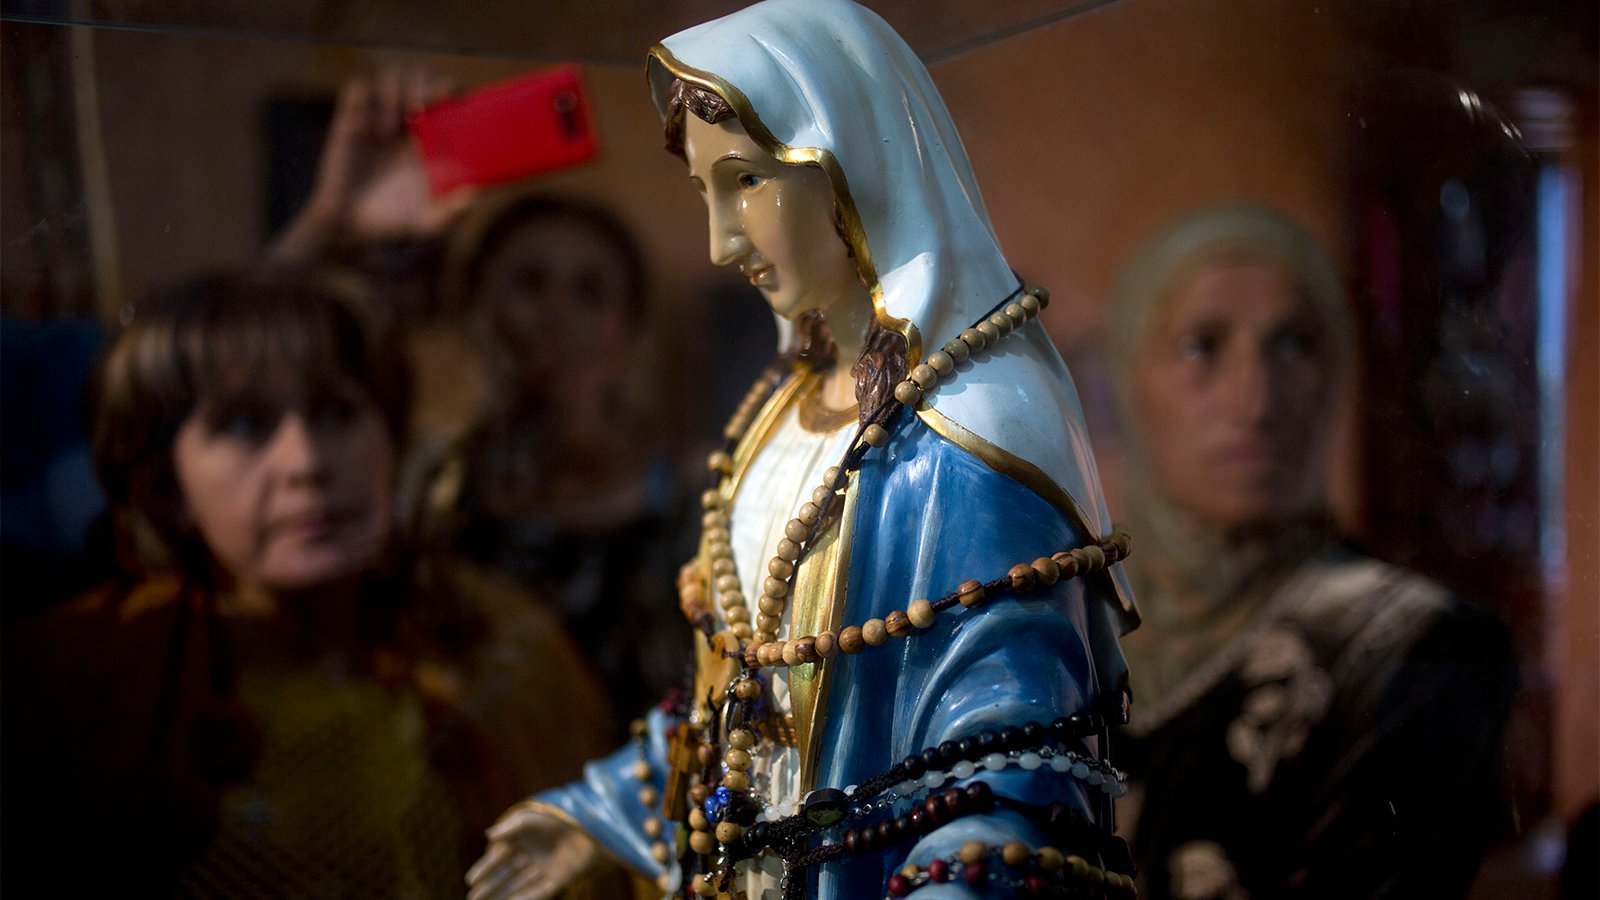 The belief behind weeping Virgin Mary statues - Religion